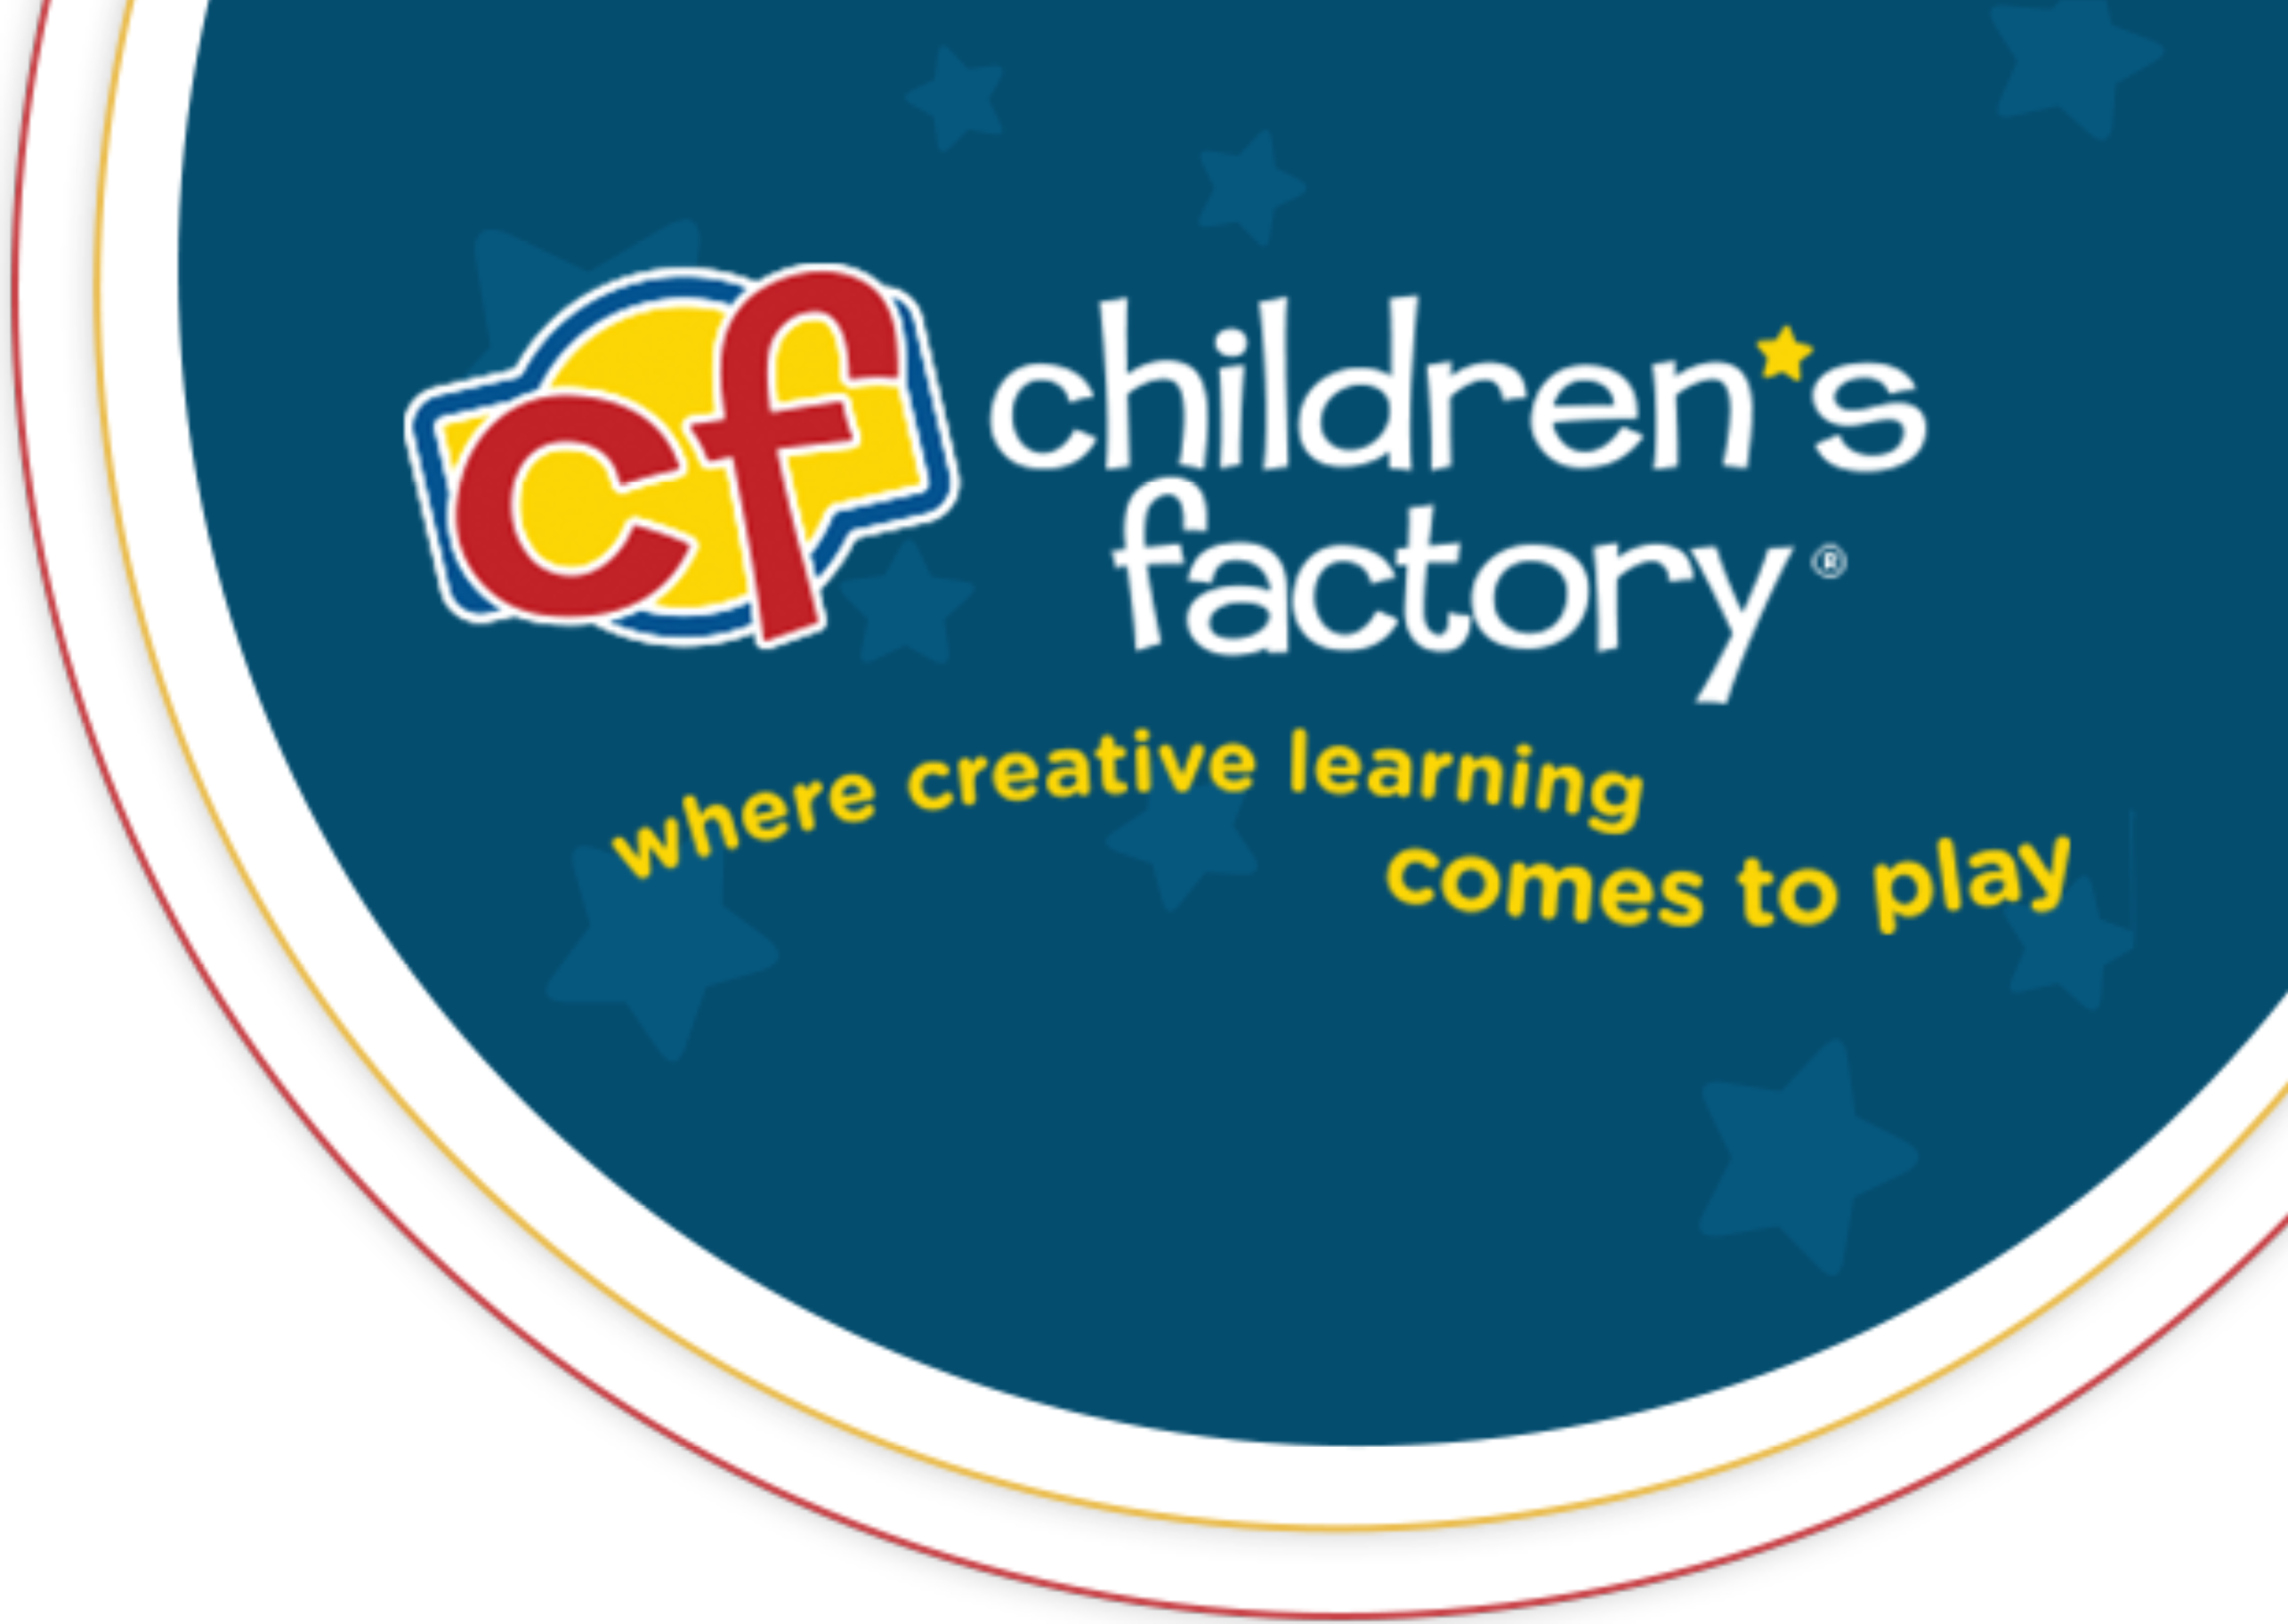 The Children's Factory